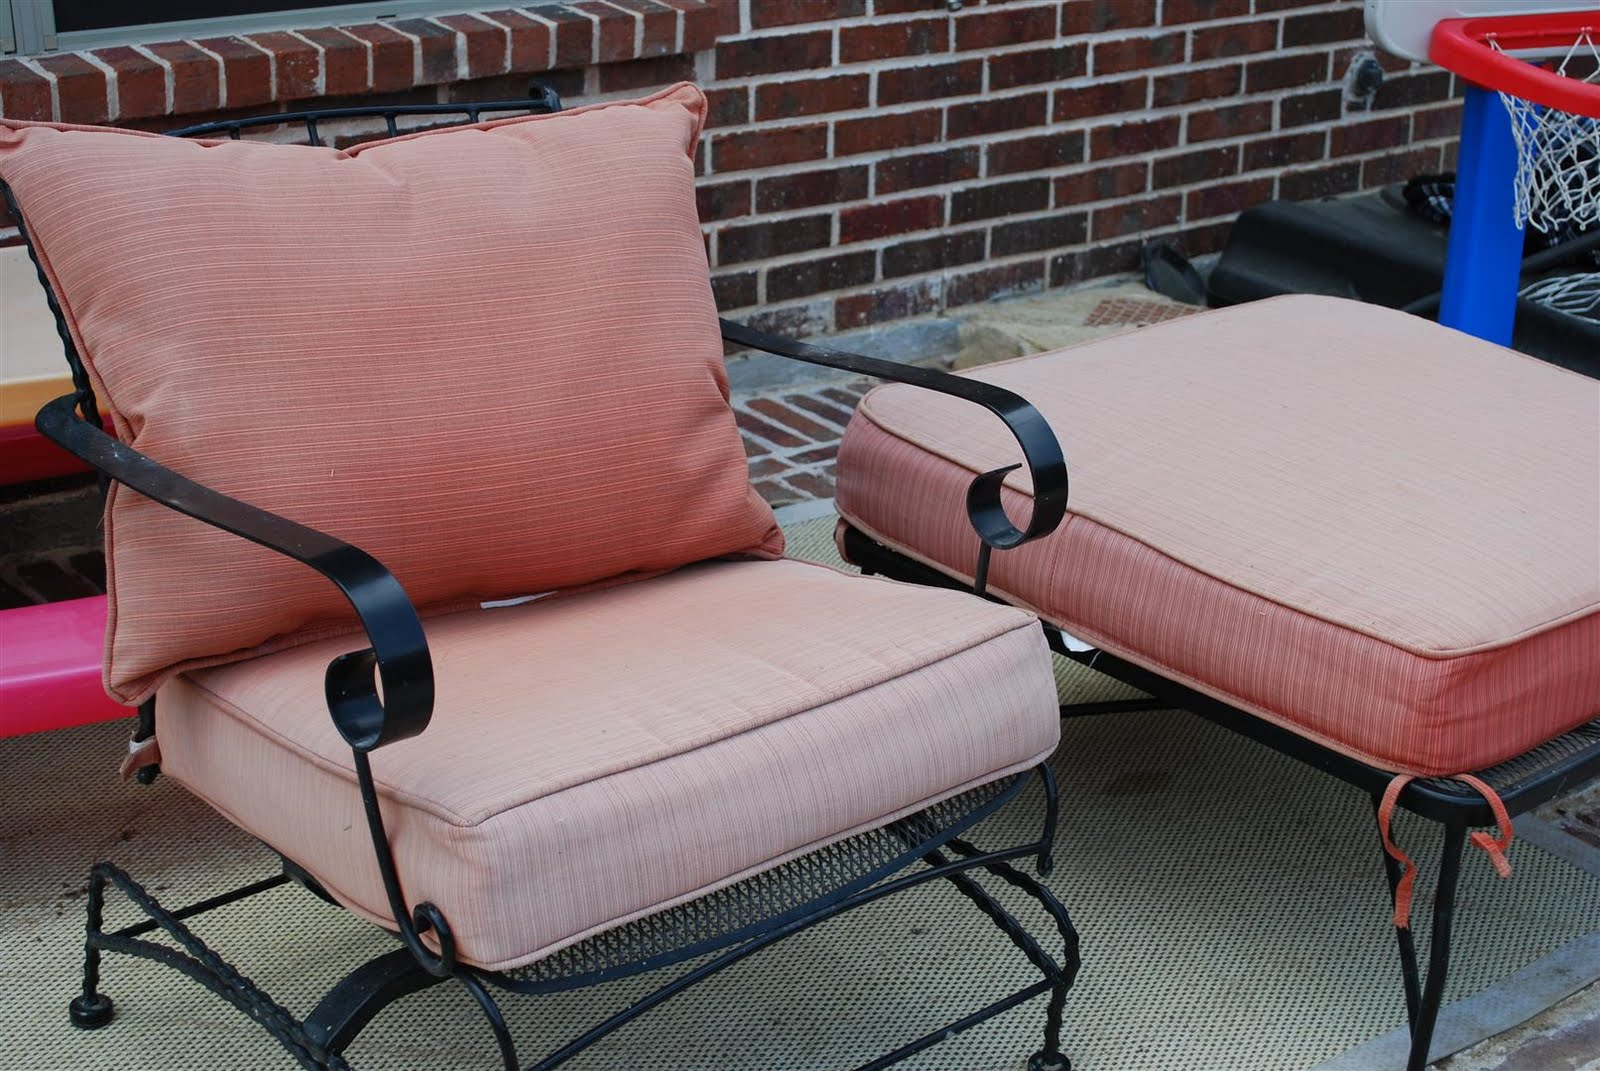 patio chairs with size in ottomans ottoman garden cheap hidden built furniture chair barninc